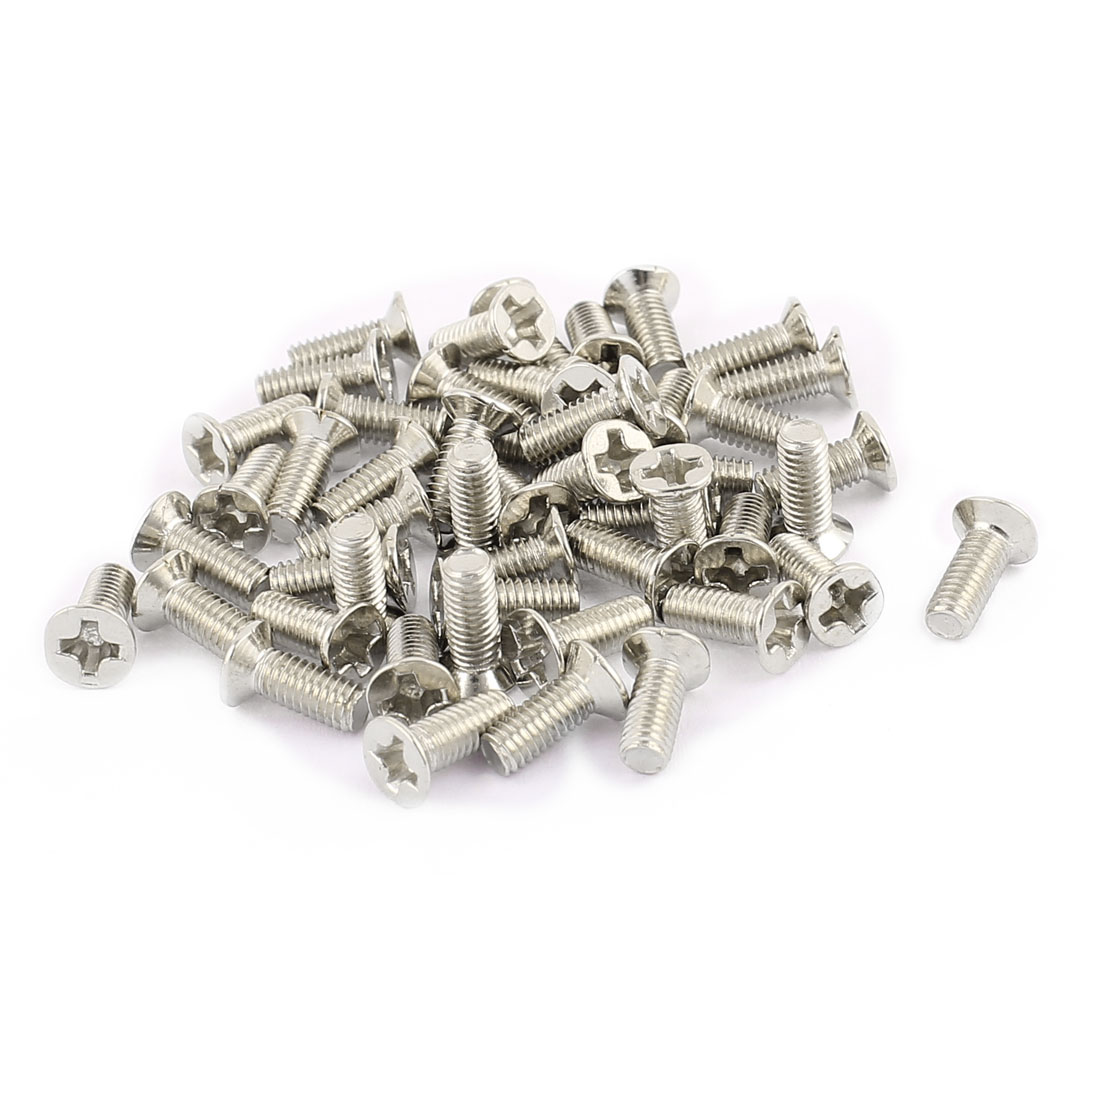 50Pcs M3x8mm 304 Stainless Steel Flat Head Phillips Machine Screws Silver Tone